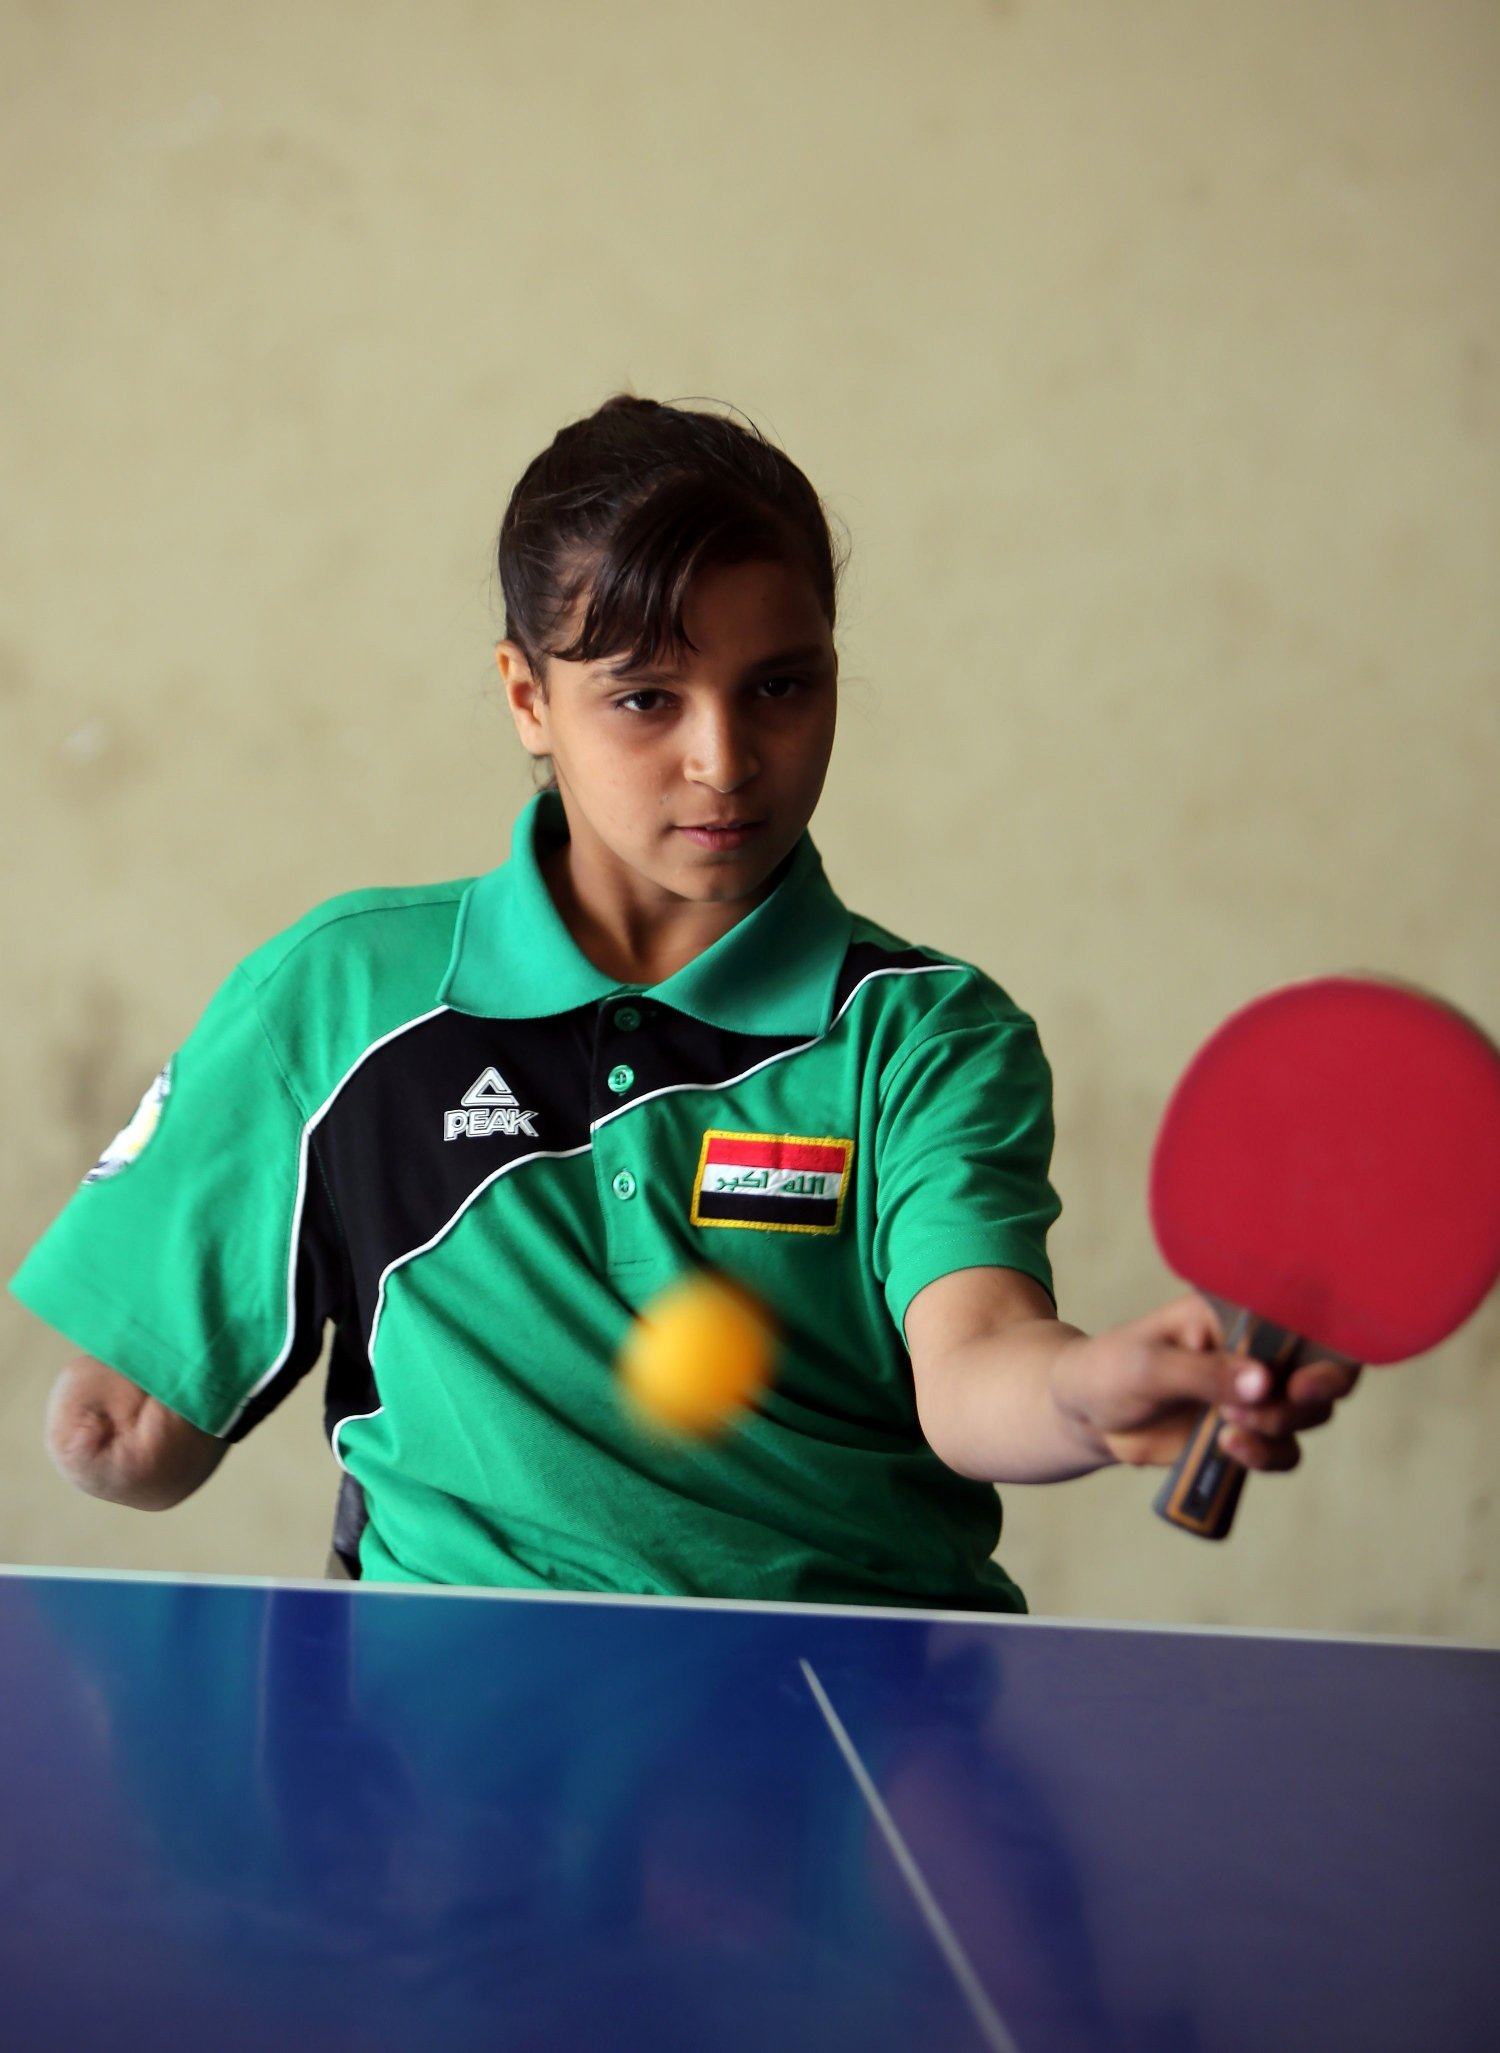 wounded in bombing iraq girl now rising table tennis star